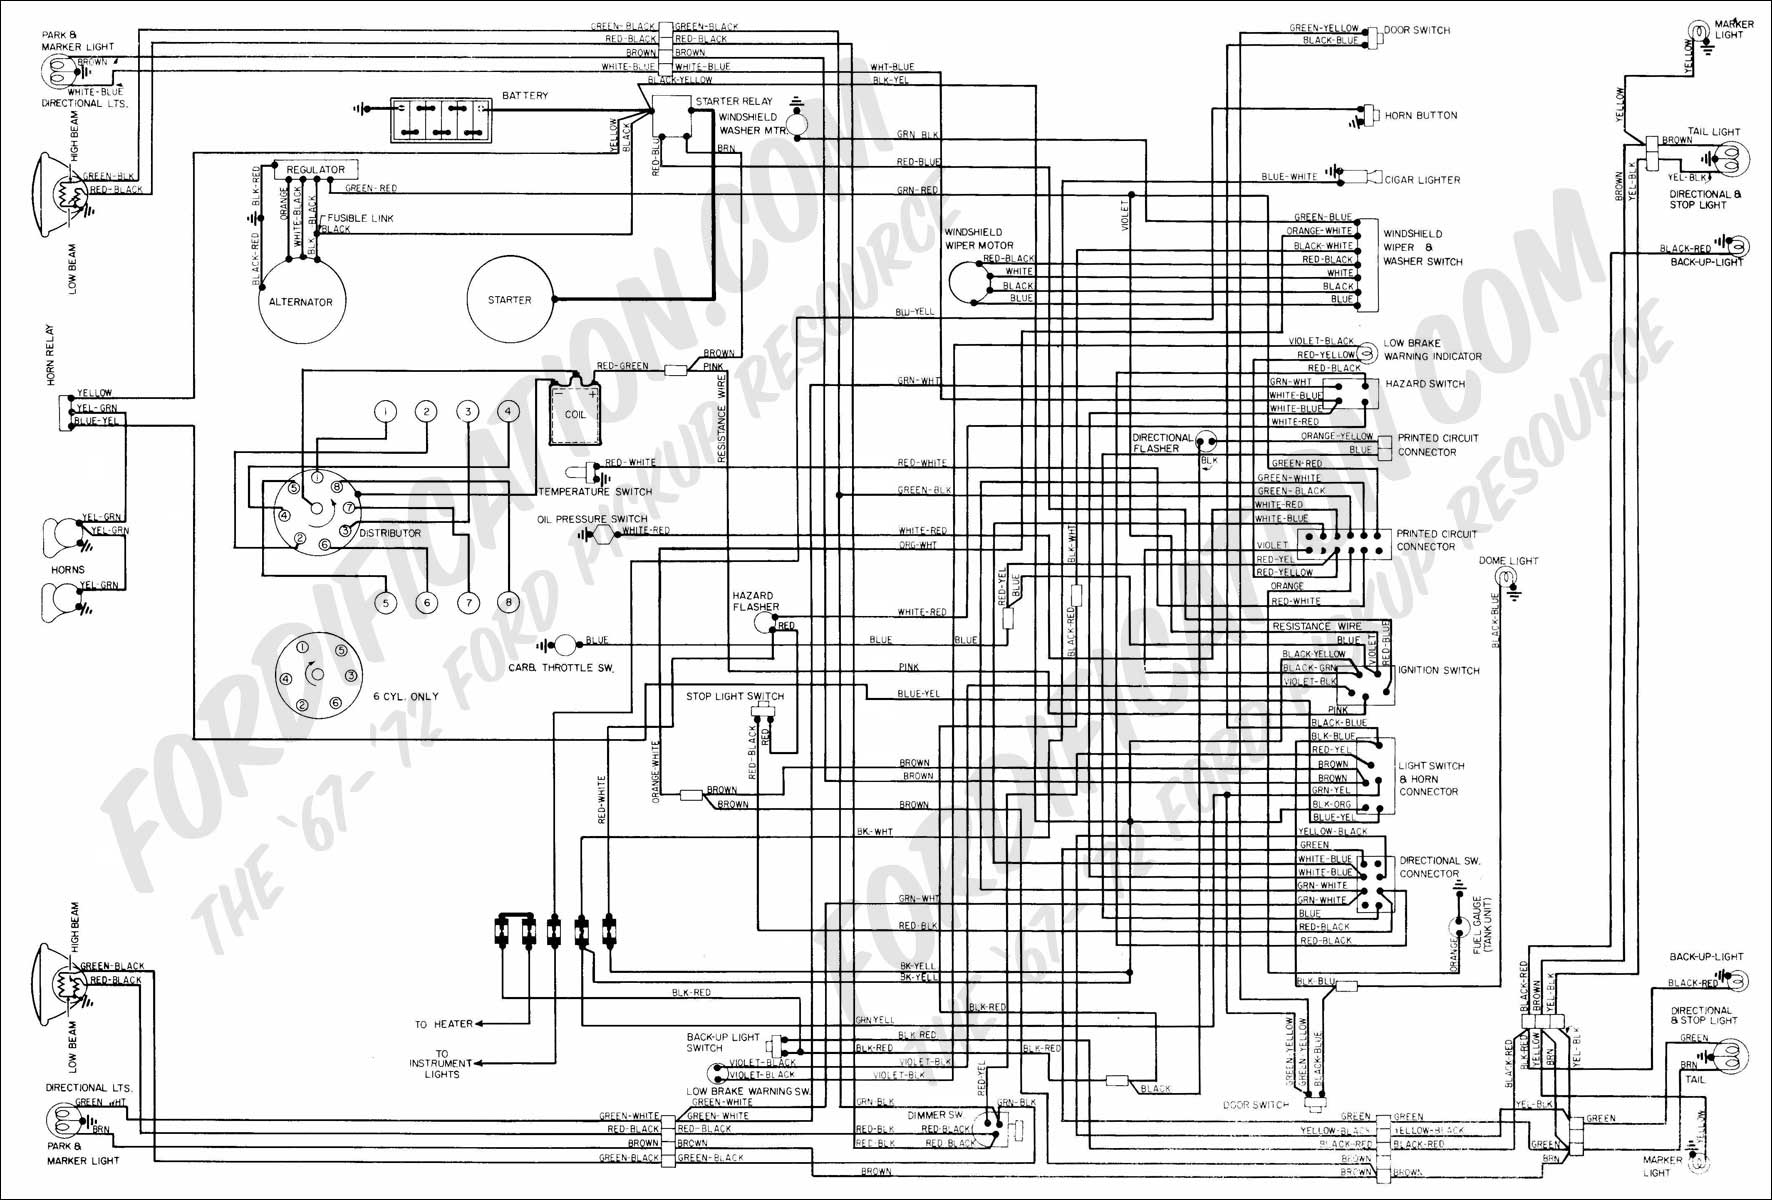 2009 ford mustang wiring diagram ford van wiring diagram ford wiring diagrams